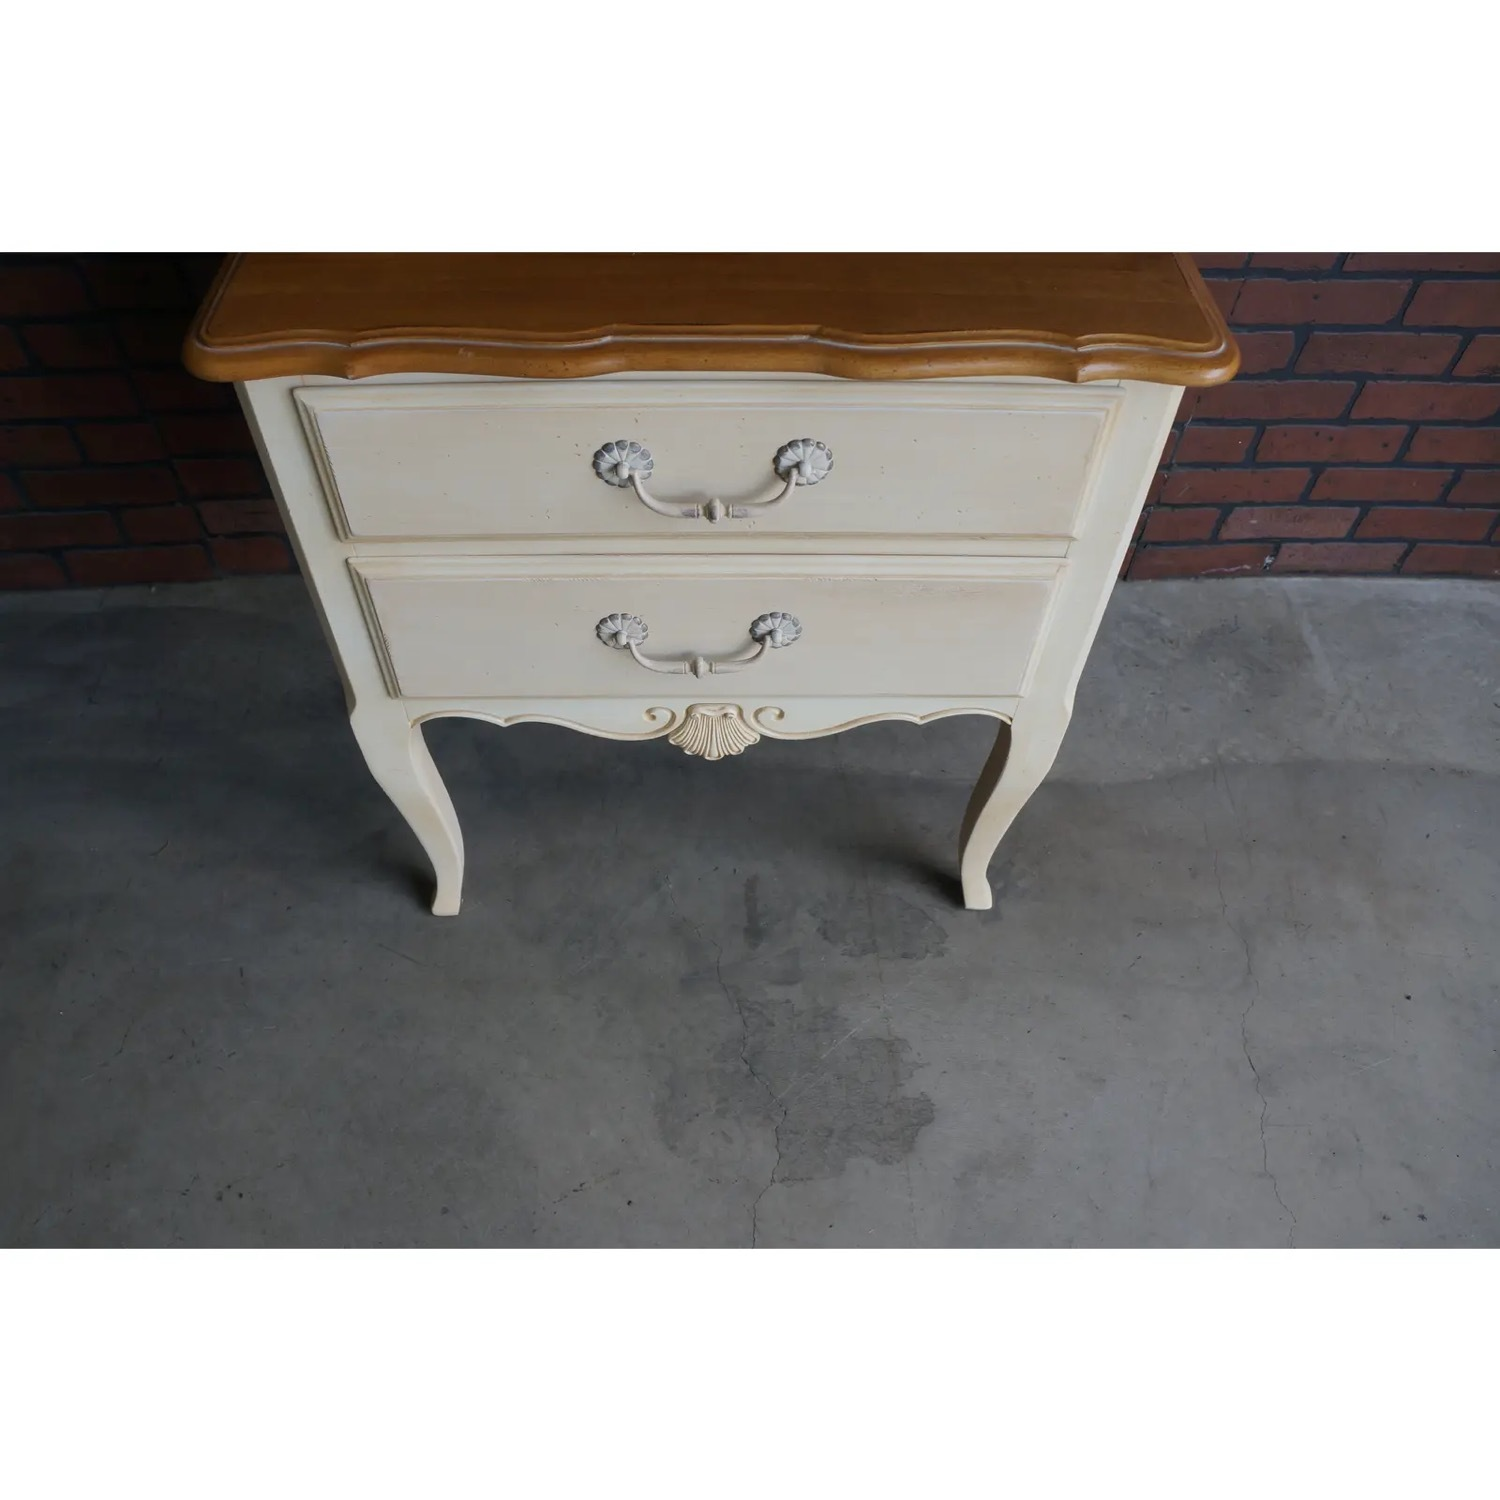 Ethan Allen Country French Nightstands - image-2